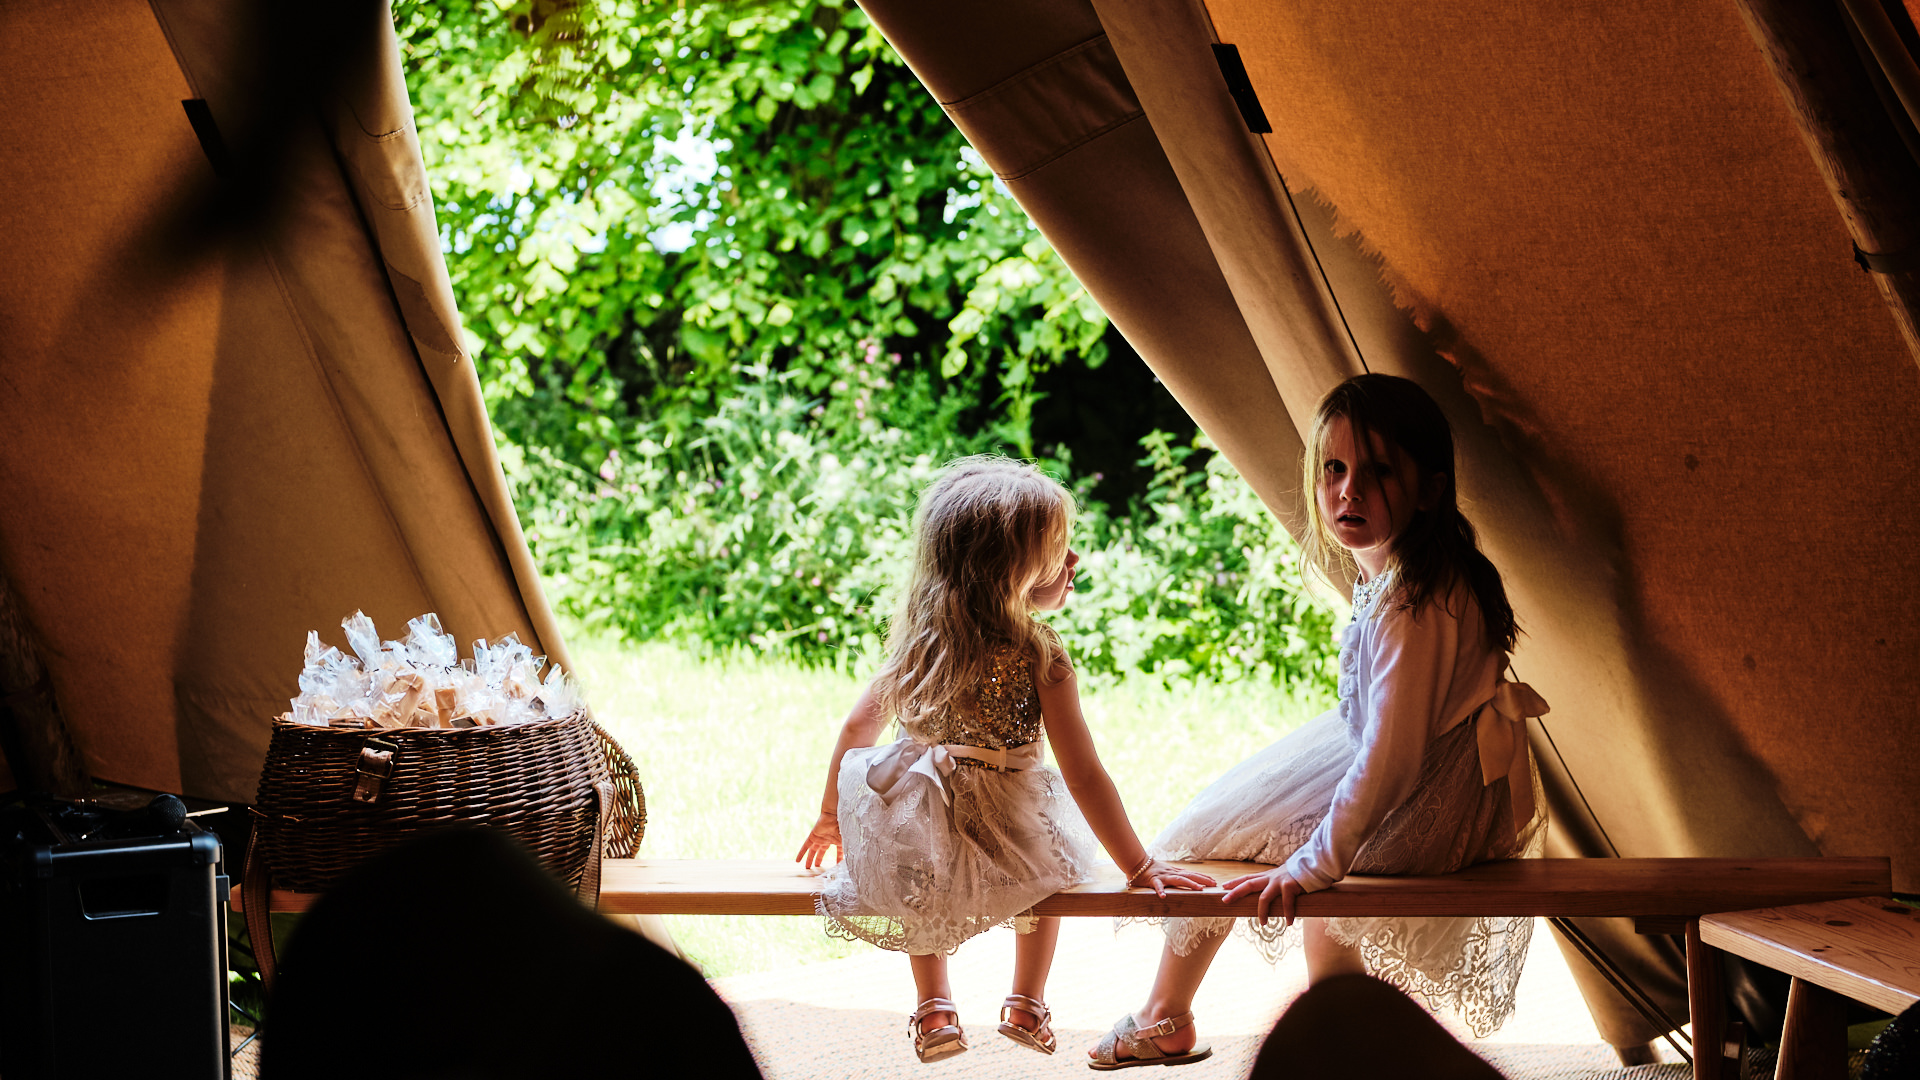 colour photograph of a two young flower girls sitting together during a wedding reception